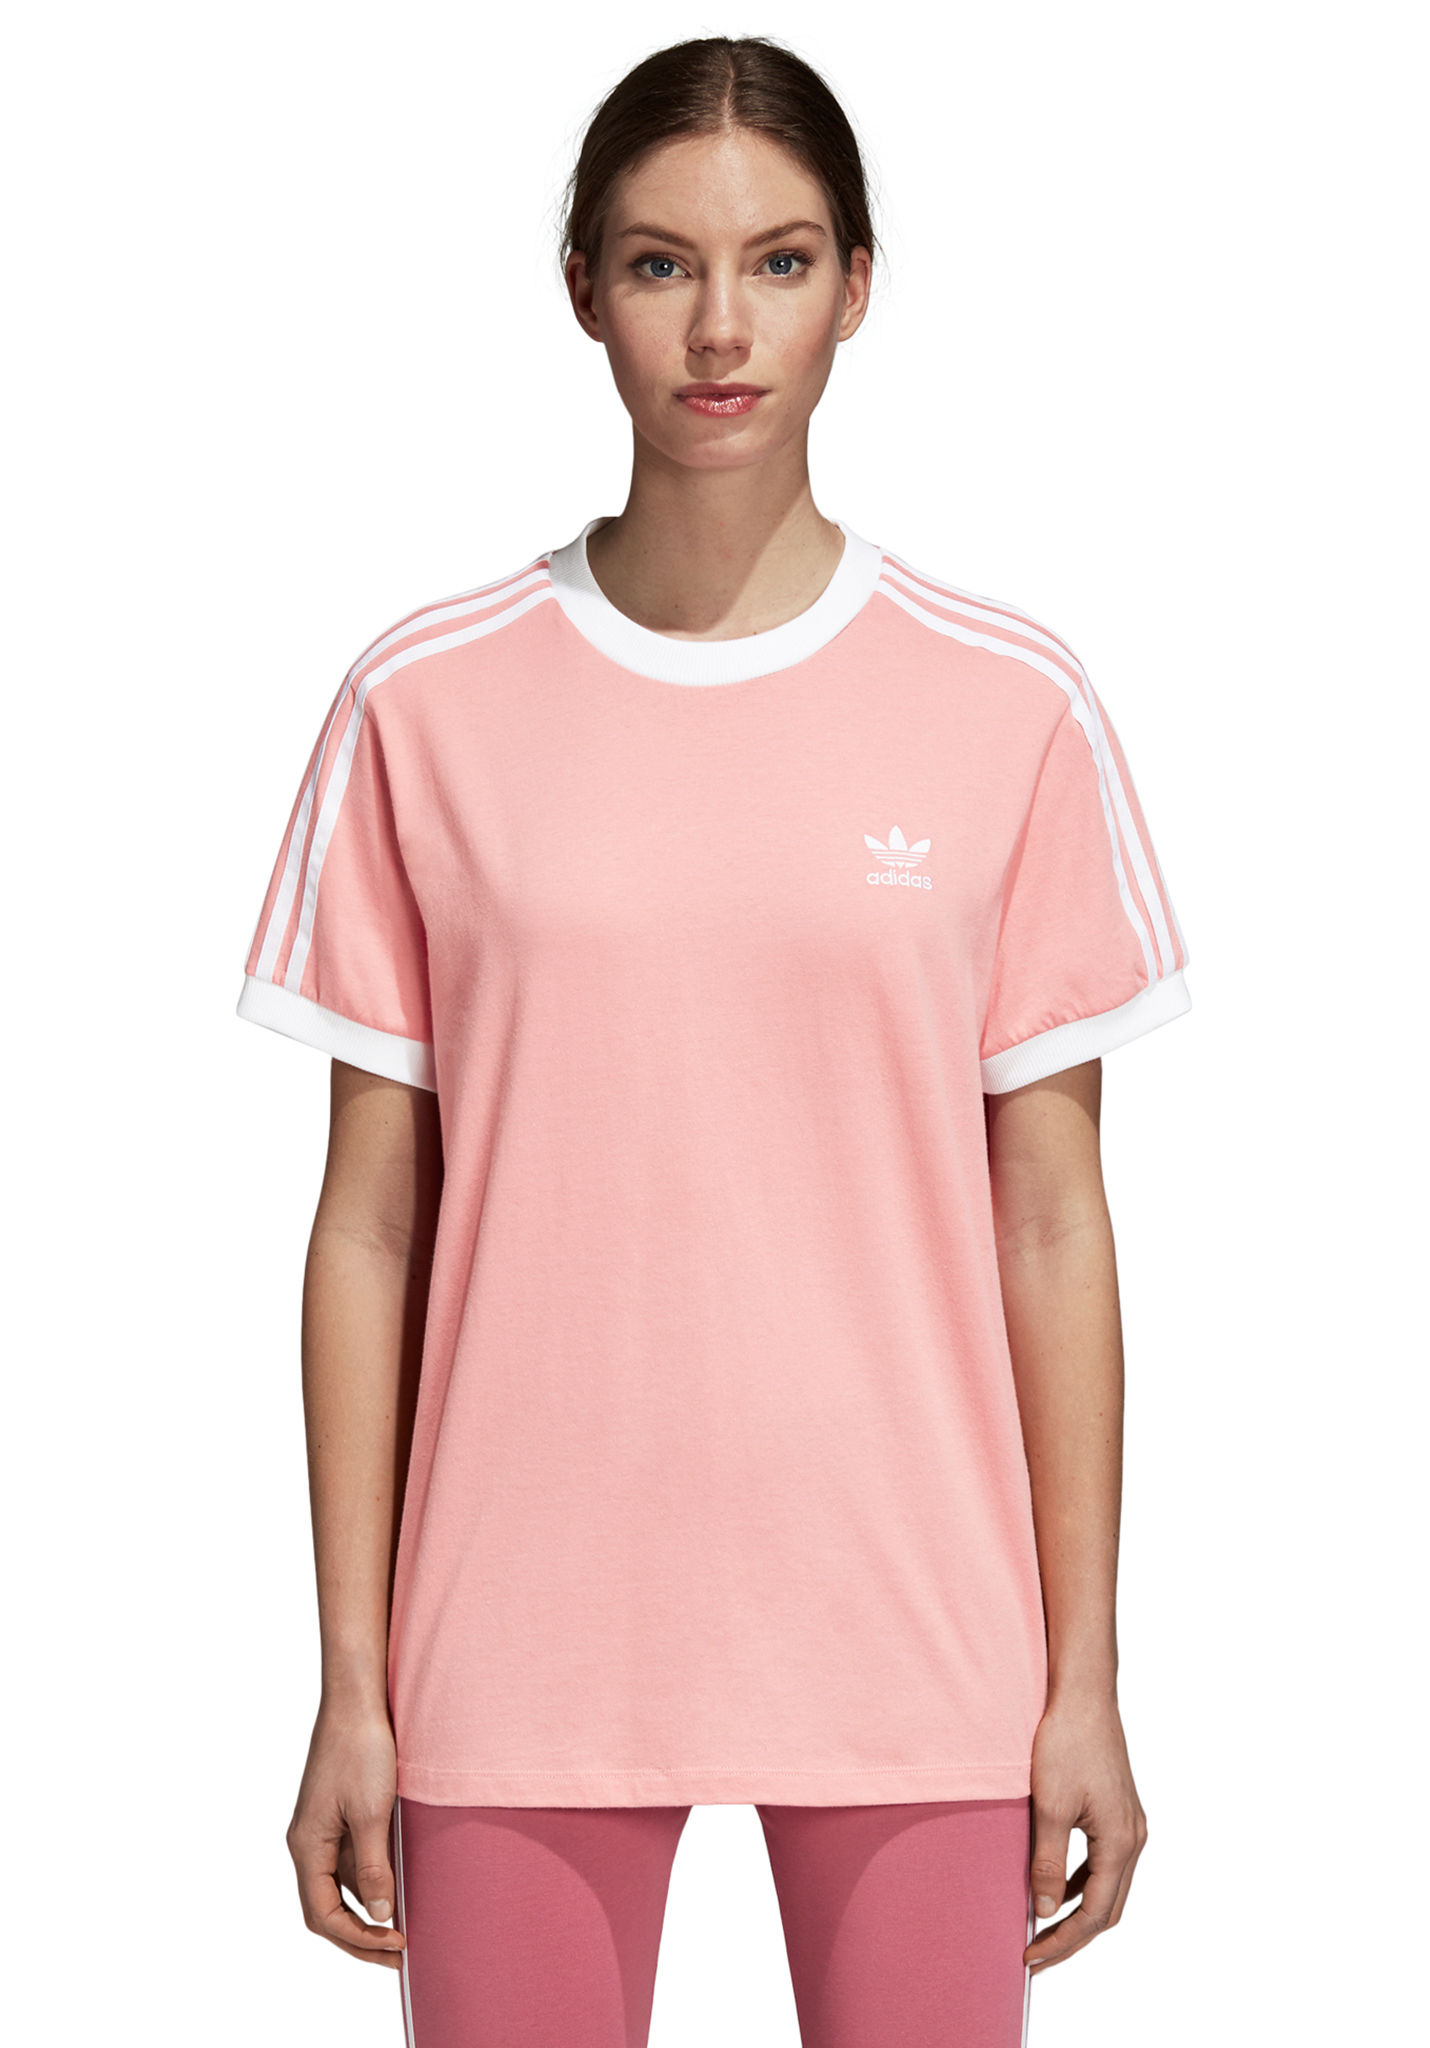 ADIDAS ORIGINALS 3 Stripes - T-Shirt per Donna - Rosa